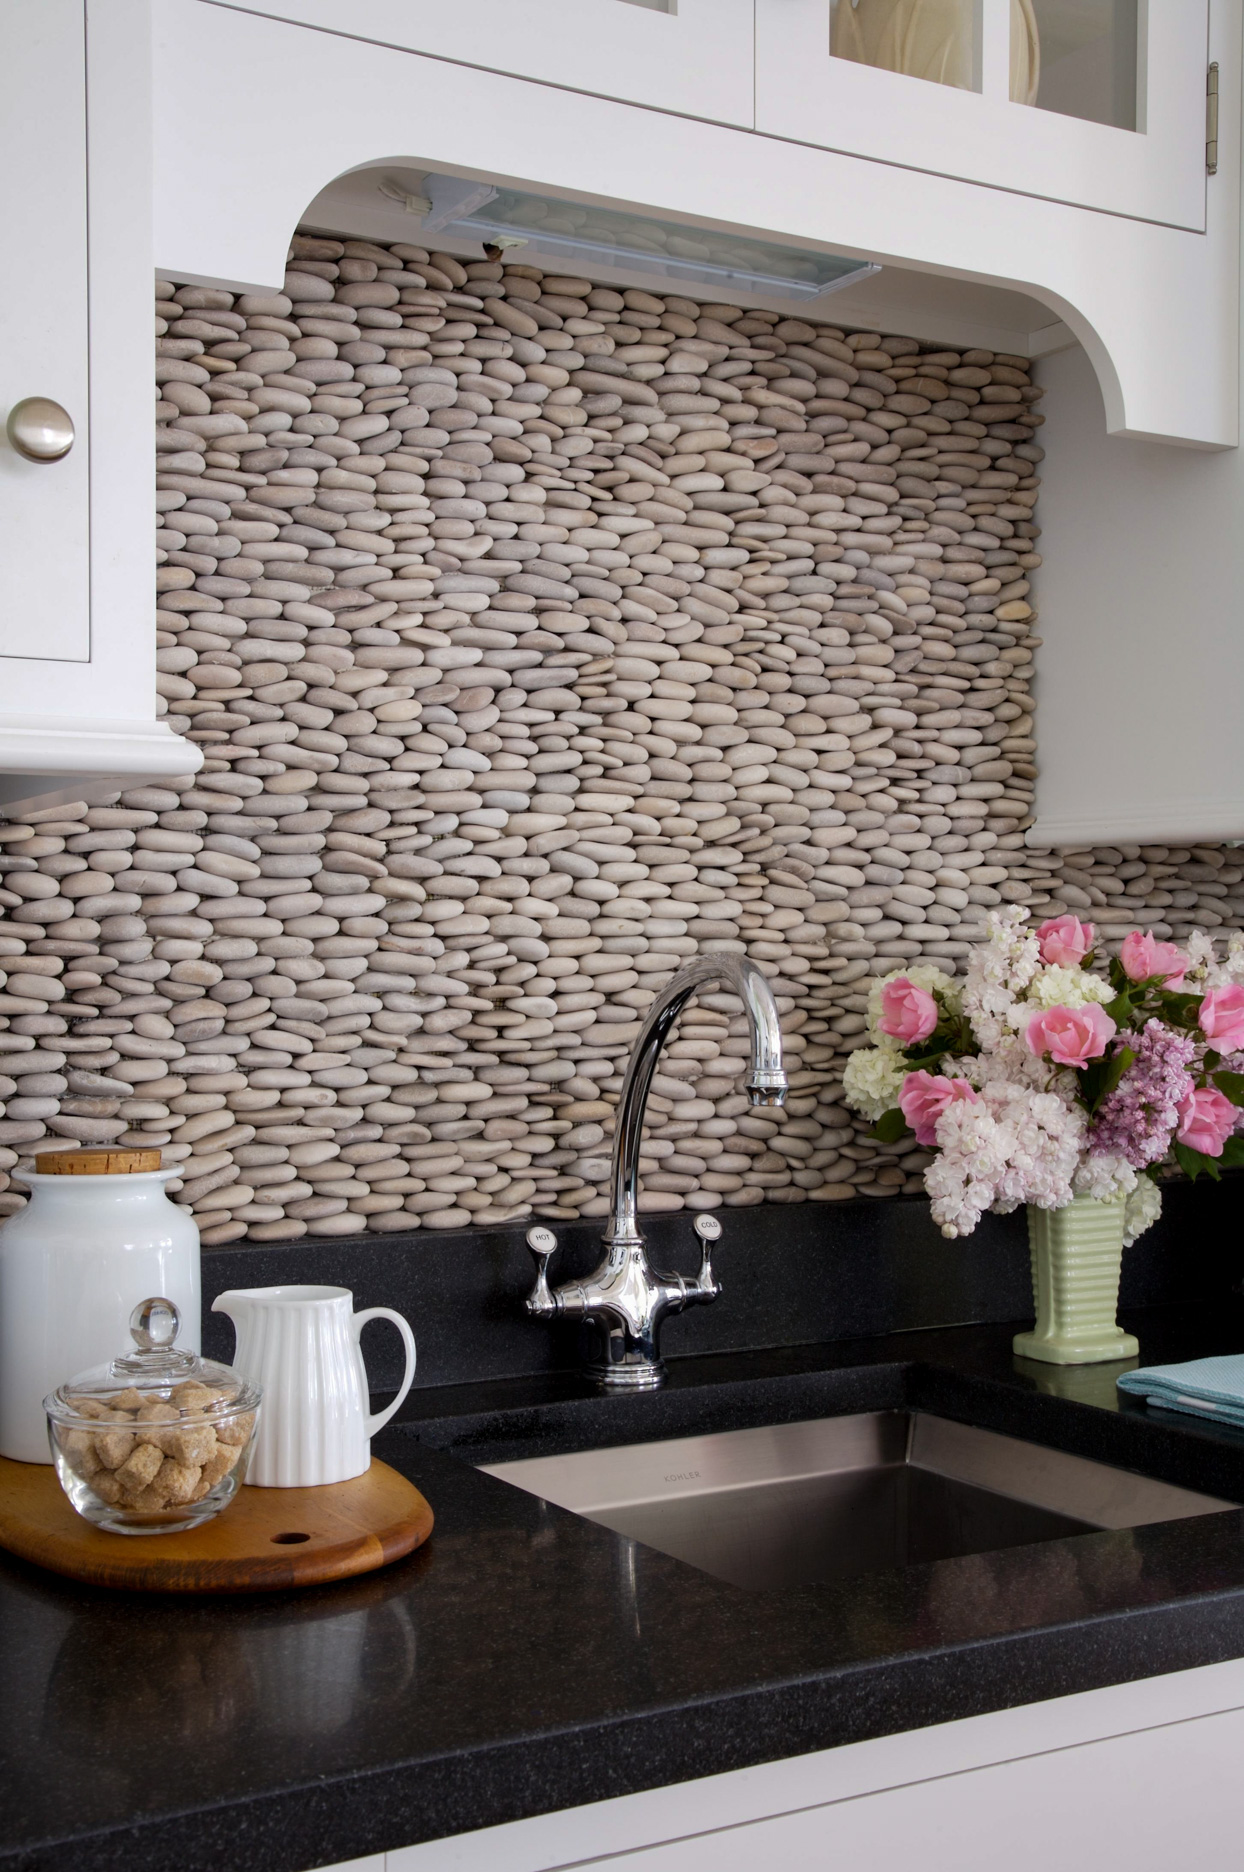 bumpy stone backsplash